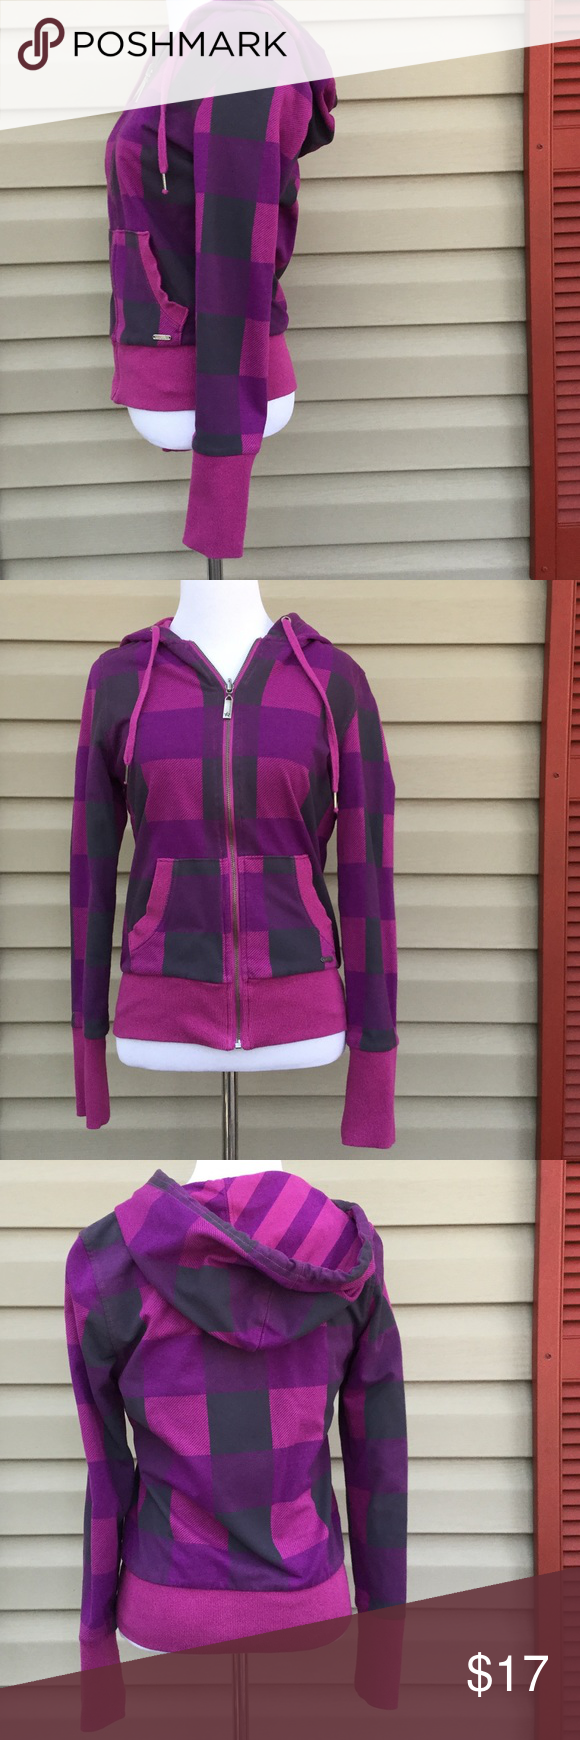 Nollie women's reversible pink,purple hoodie Very nice women's zip front hoodie, one side is pink/ purple striped, other side is pink, purple and gray plaid. Both sides have front pockets.59% cotton 41% polyester, no stain or holes EUC Nollie Jackets & Coats